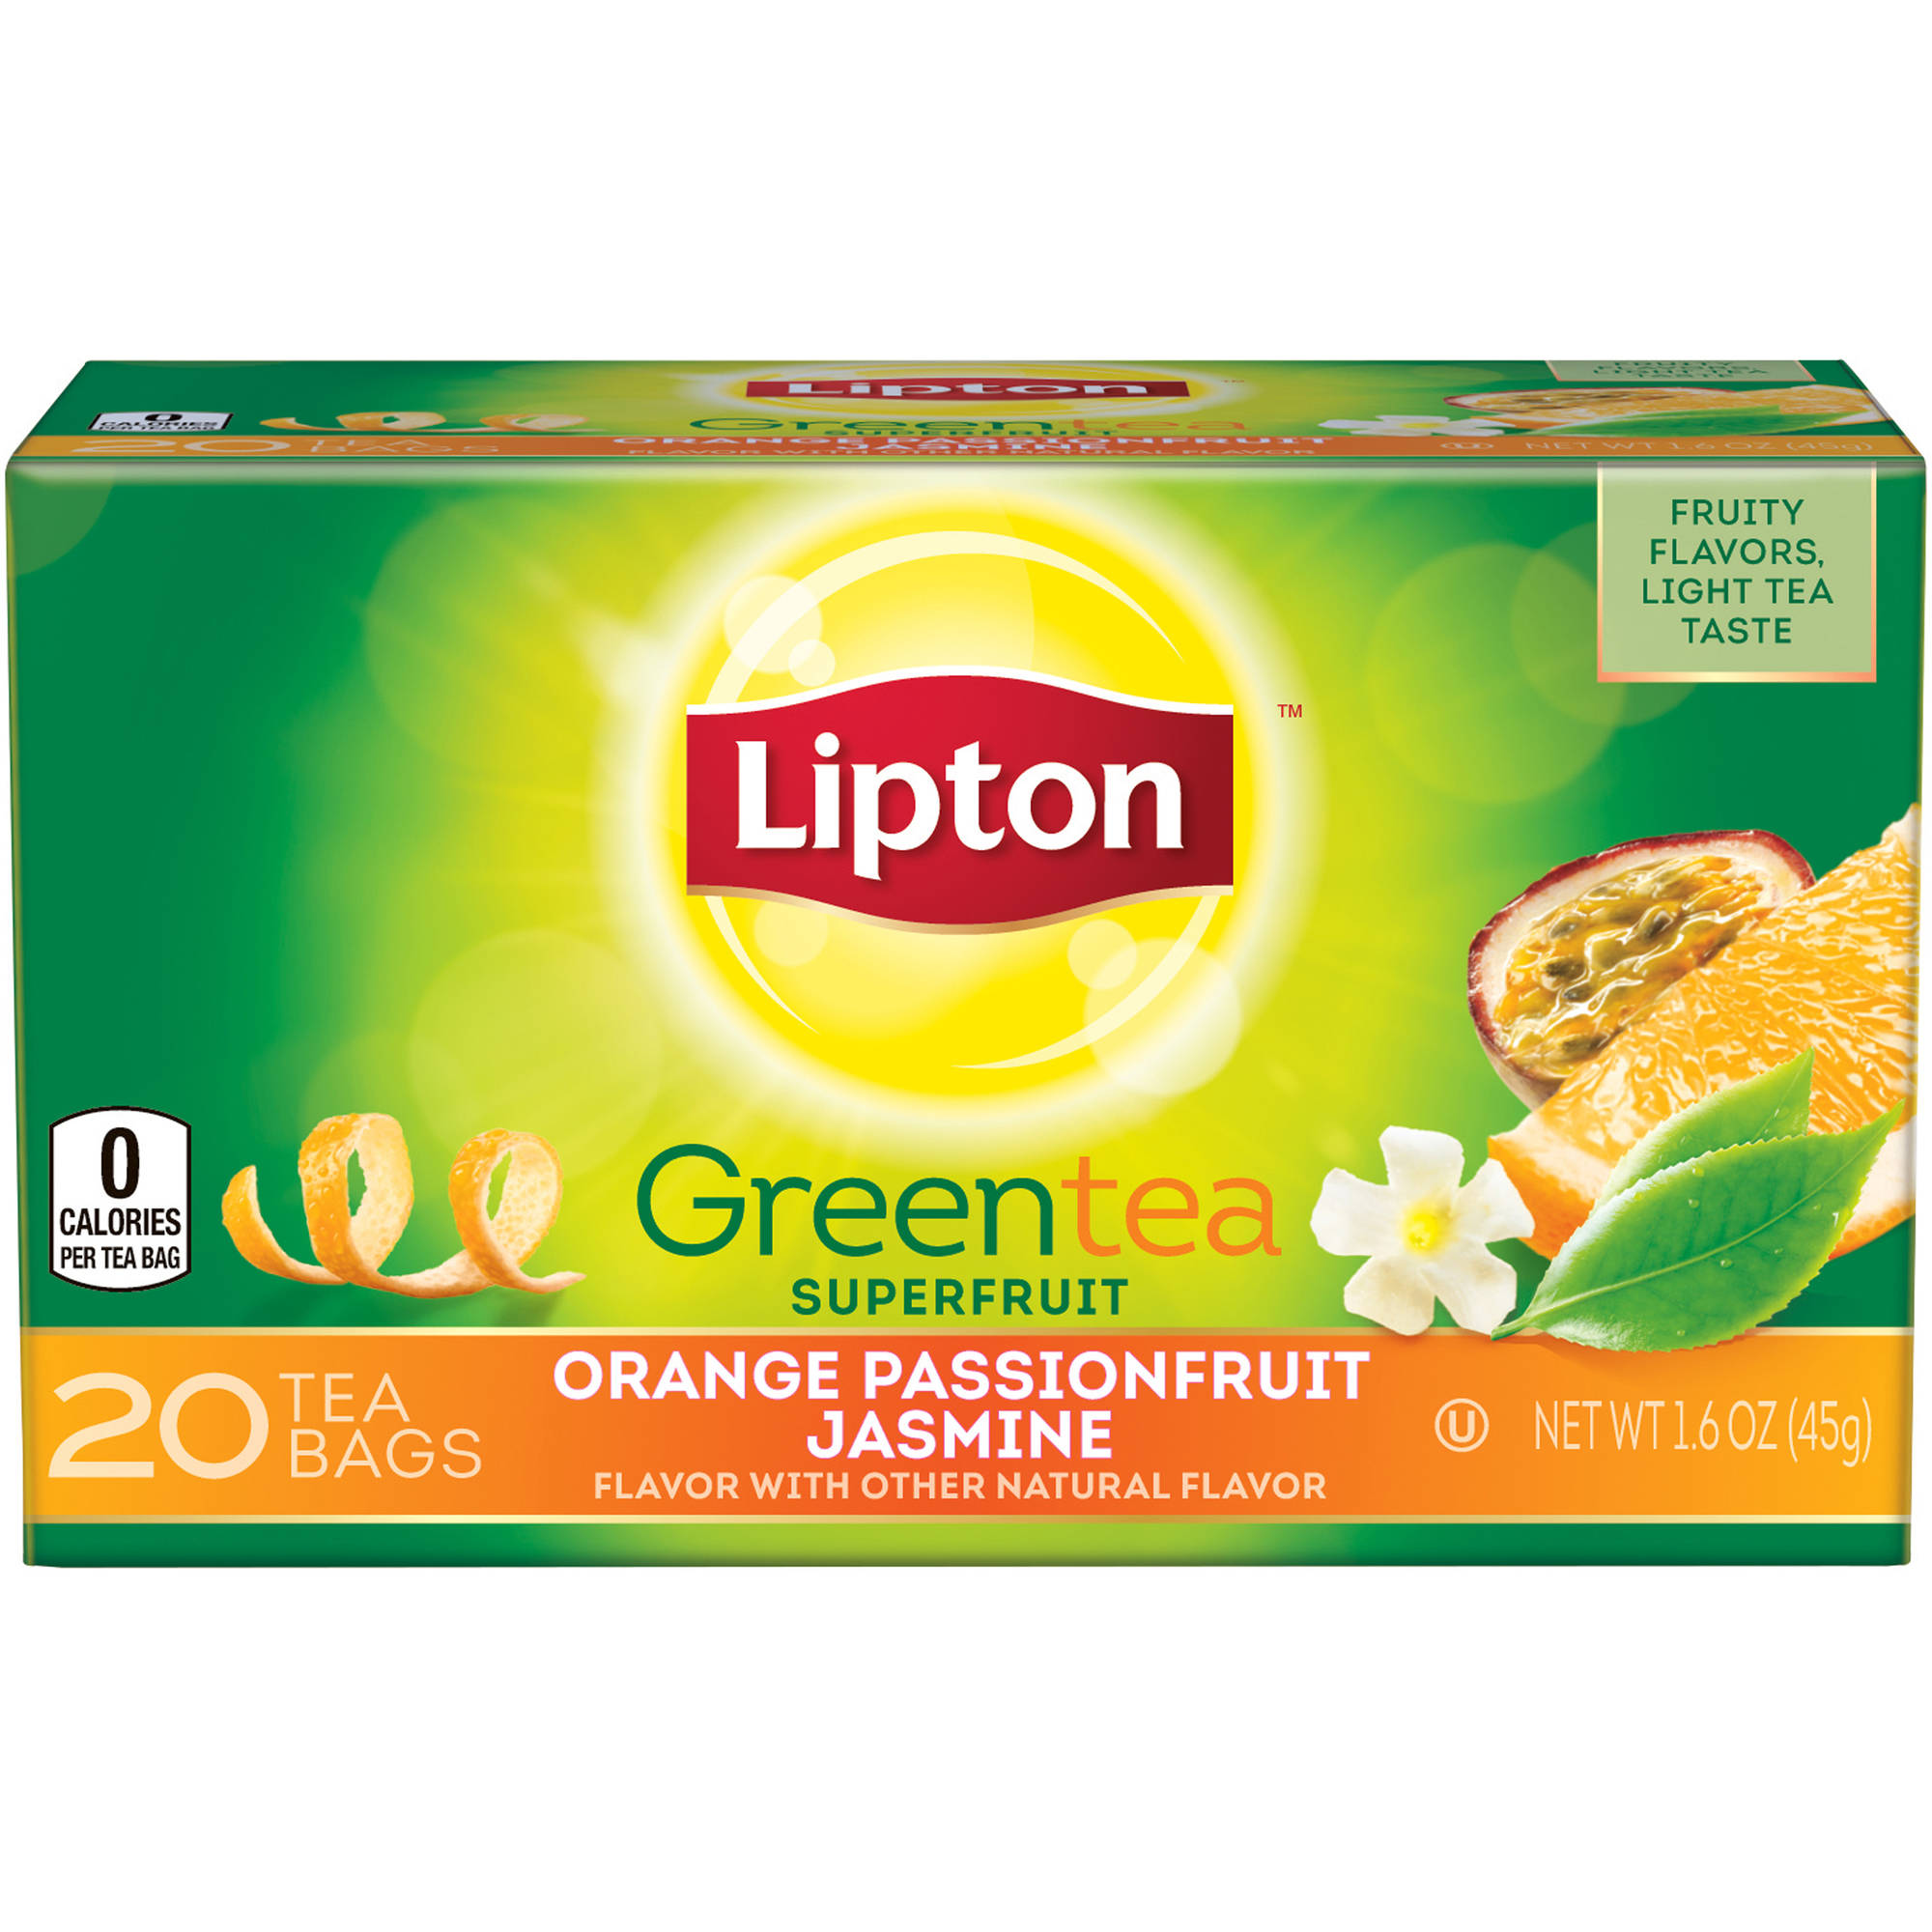 Lipton Orange Passionfruit Jasmine Green Tea Bags, 20 ct